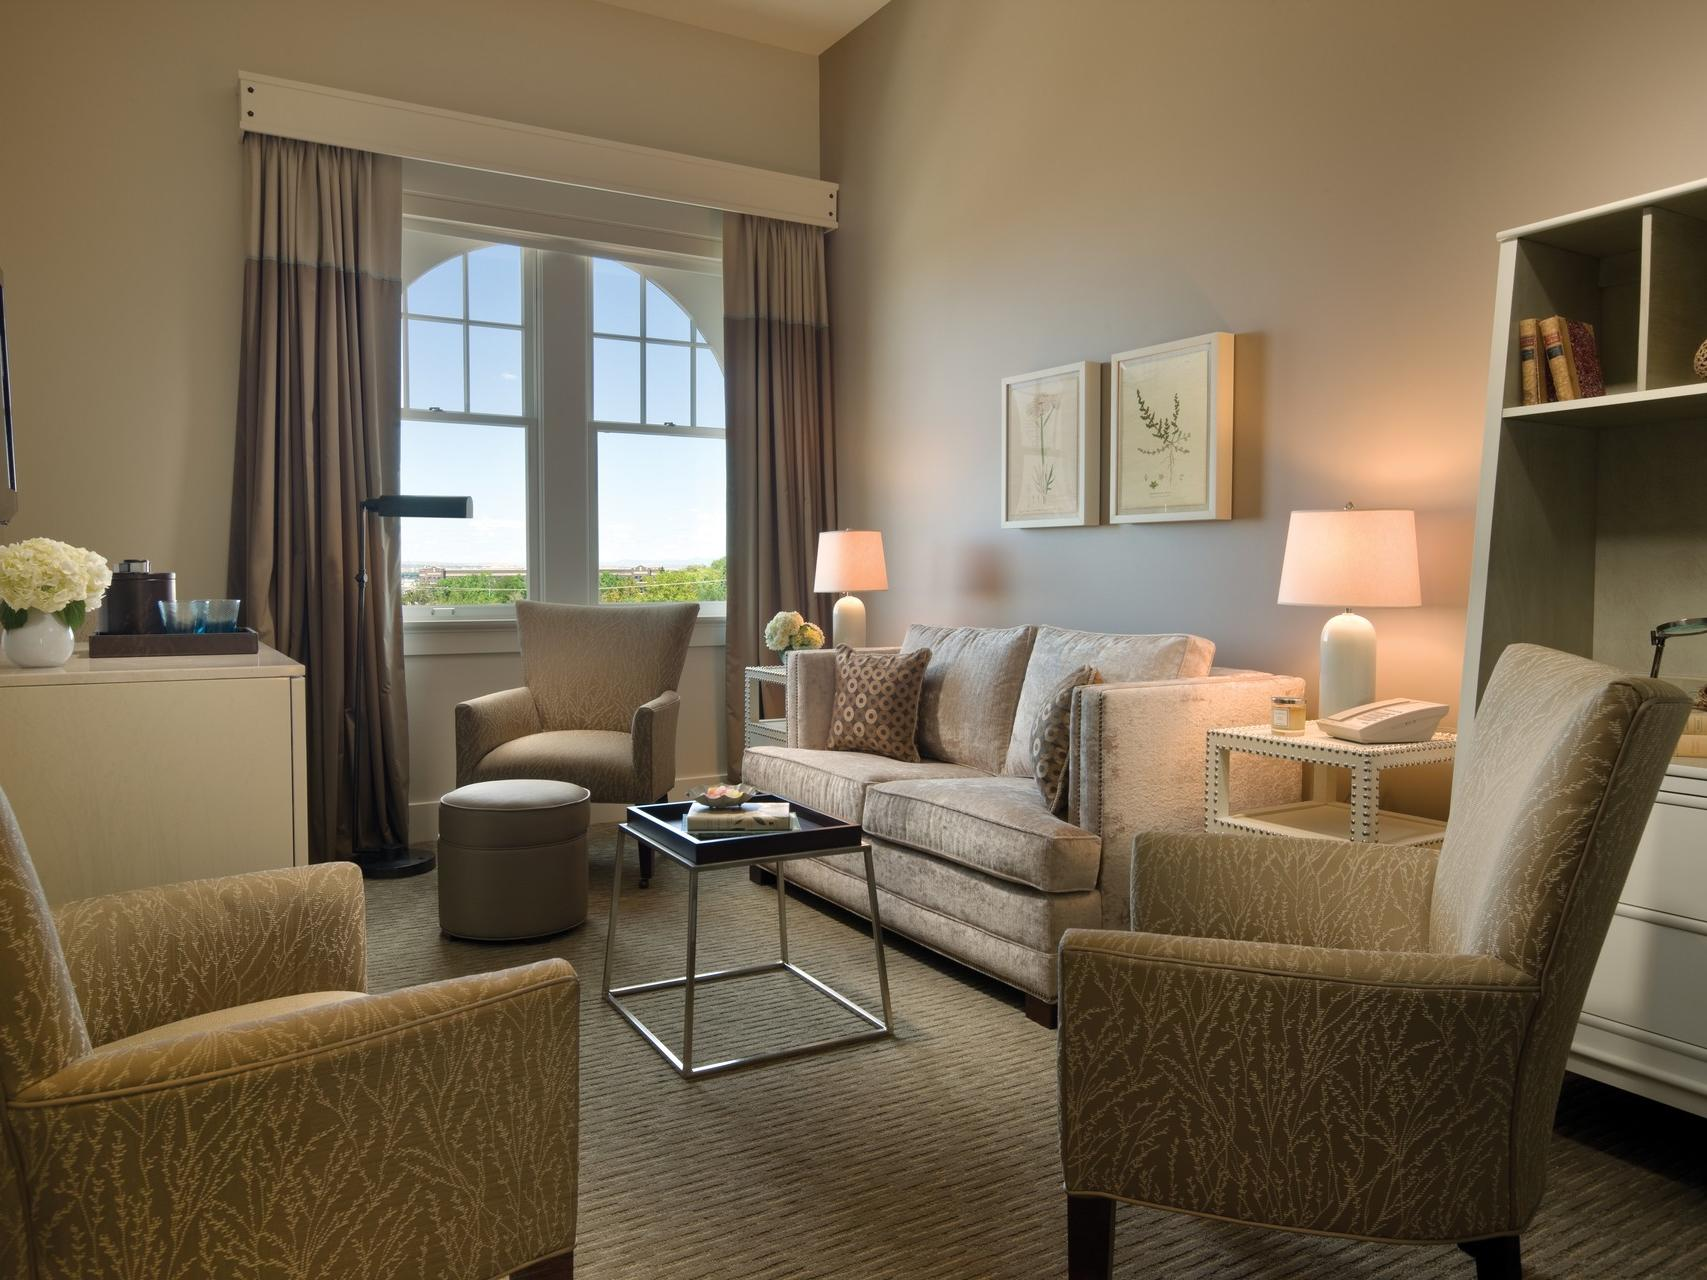 Lounge area and furniture in hotel room